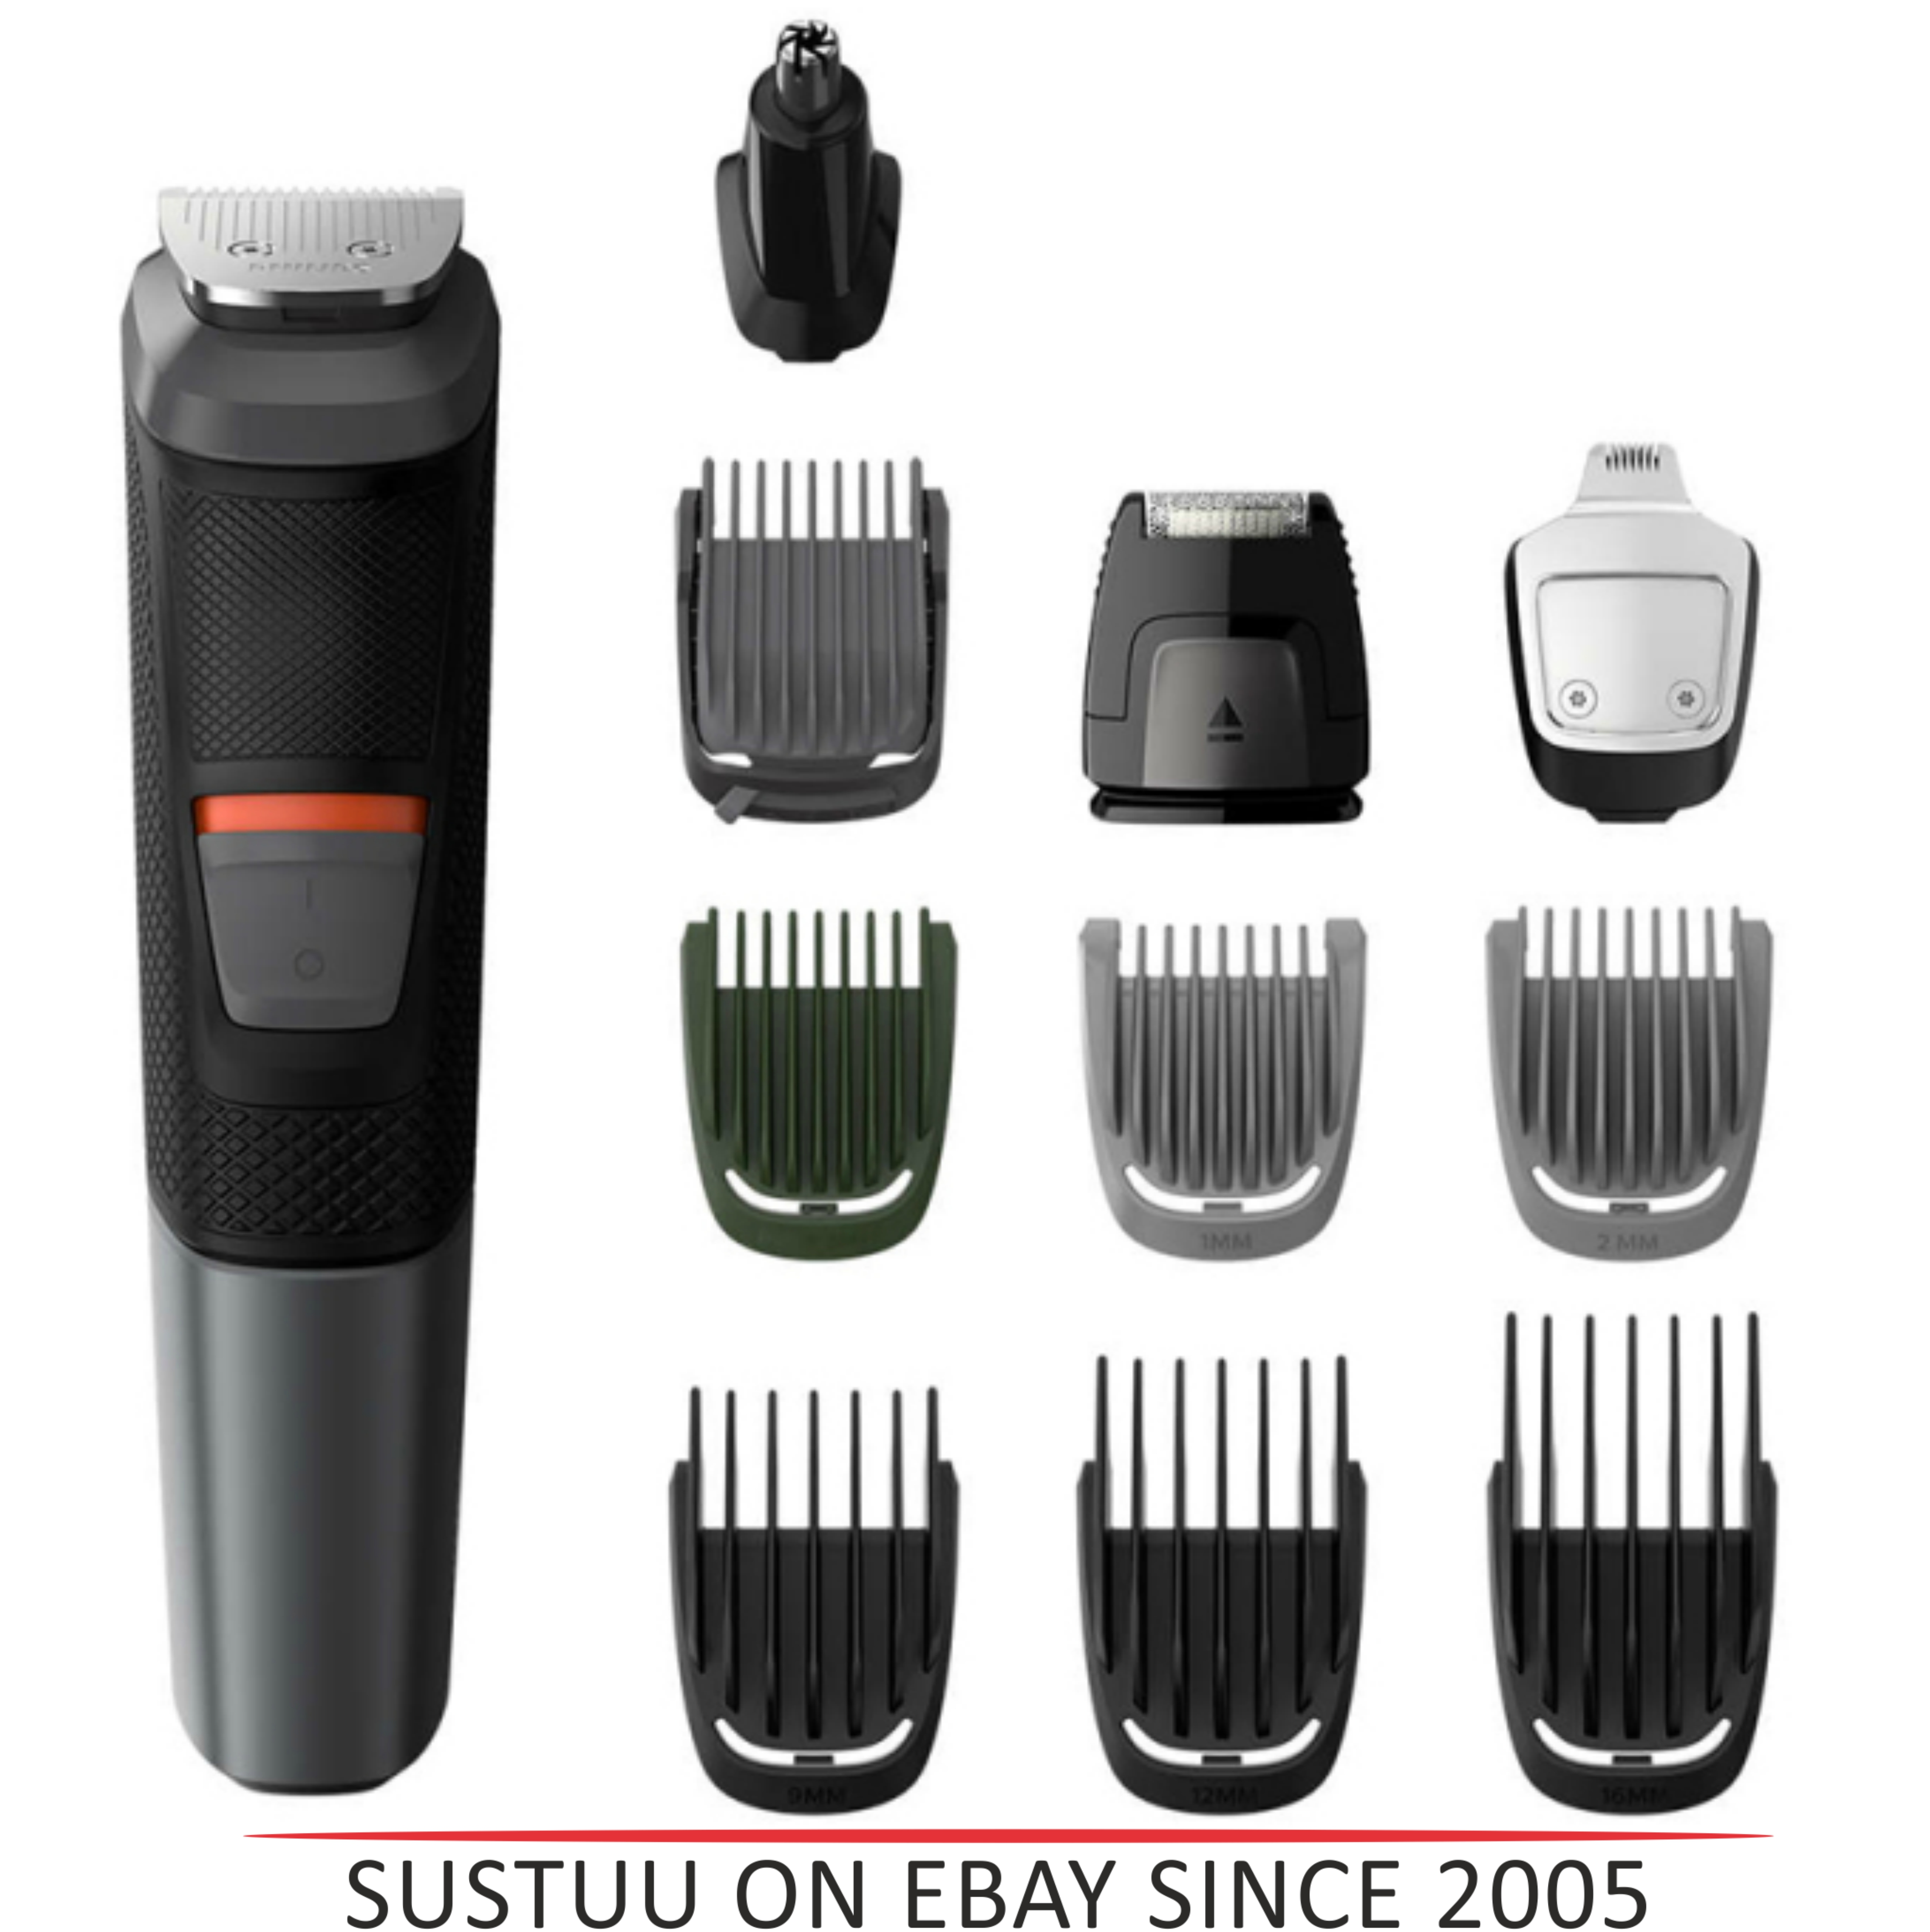 Philips 11 in 1 Multigroom|Face|Nose|Body|Hair|Trimmer Clipper Set|MG5730/13|NEW